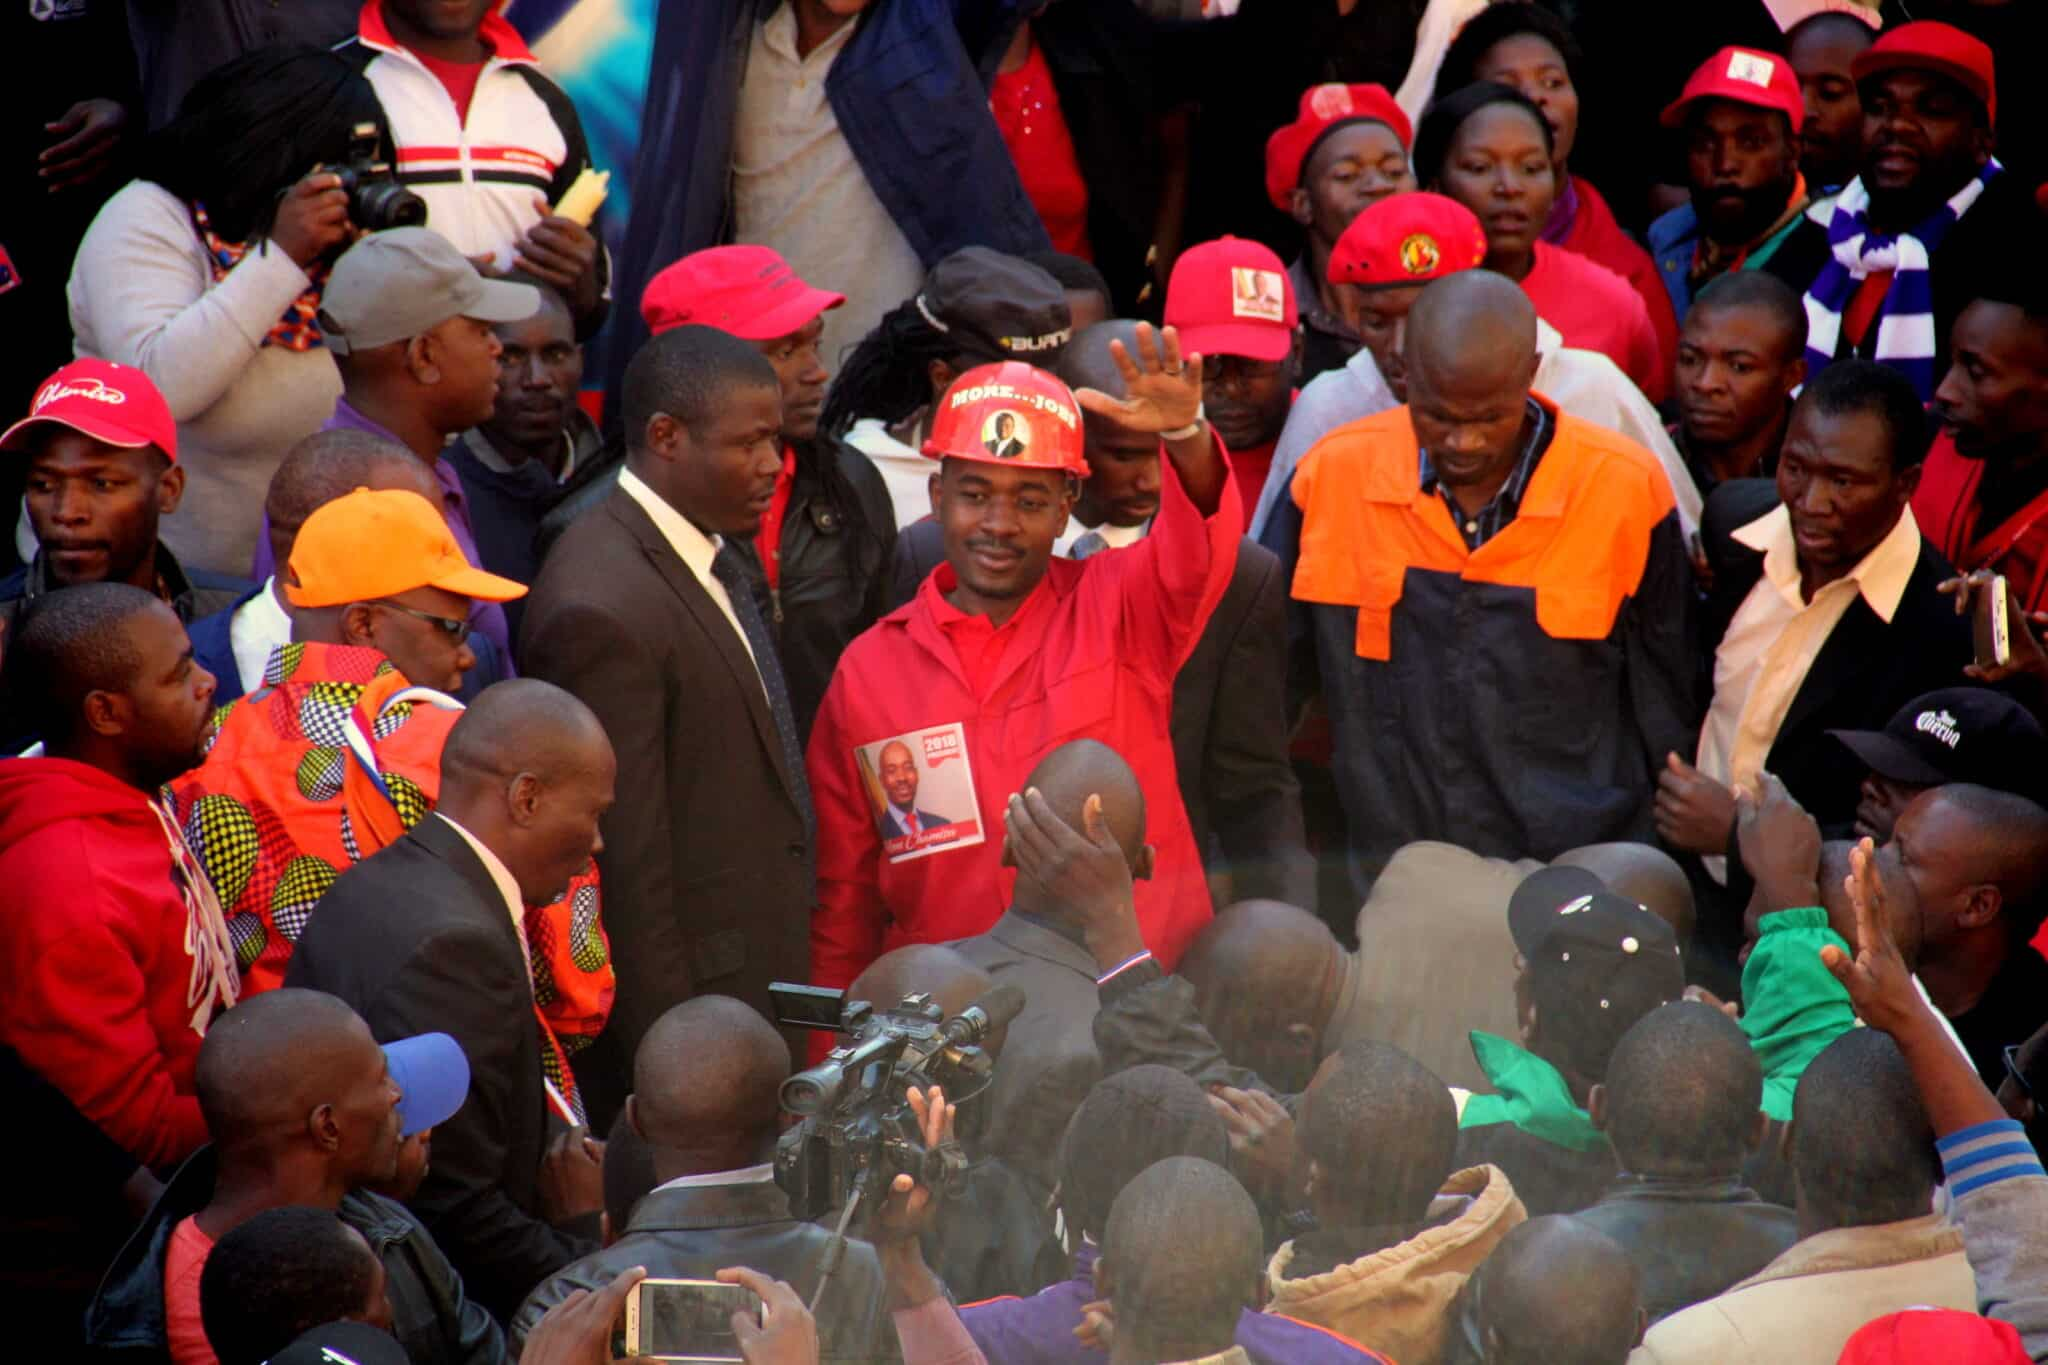 MDC Grassroots Unmoved By Recalls, Rally Behind Chamisa   263Chat